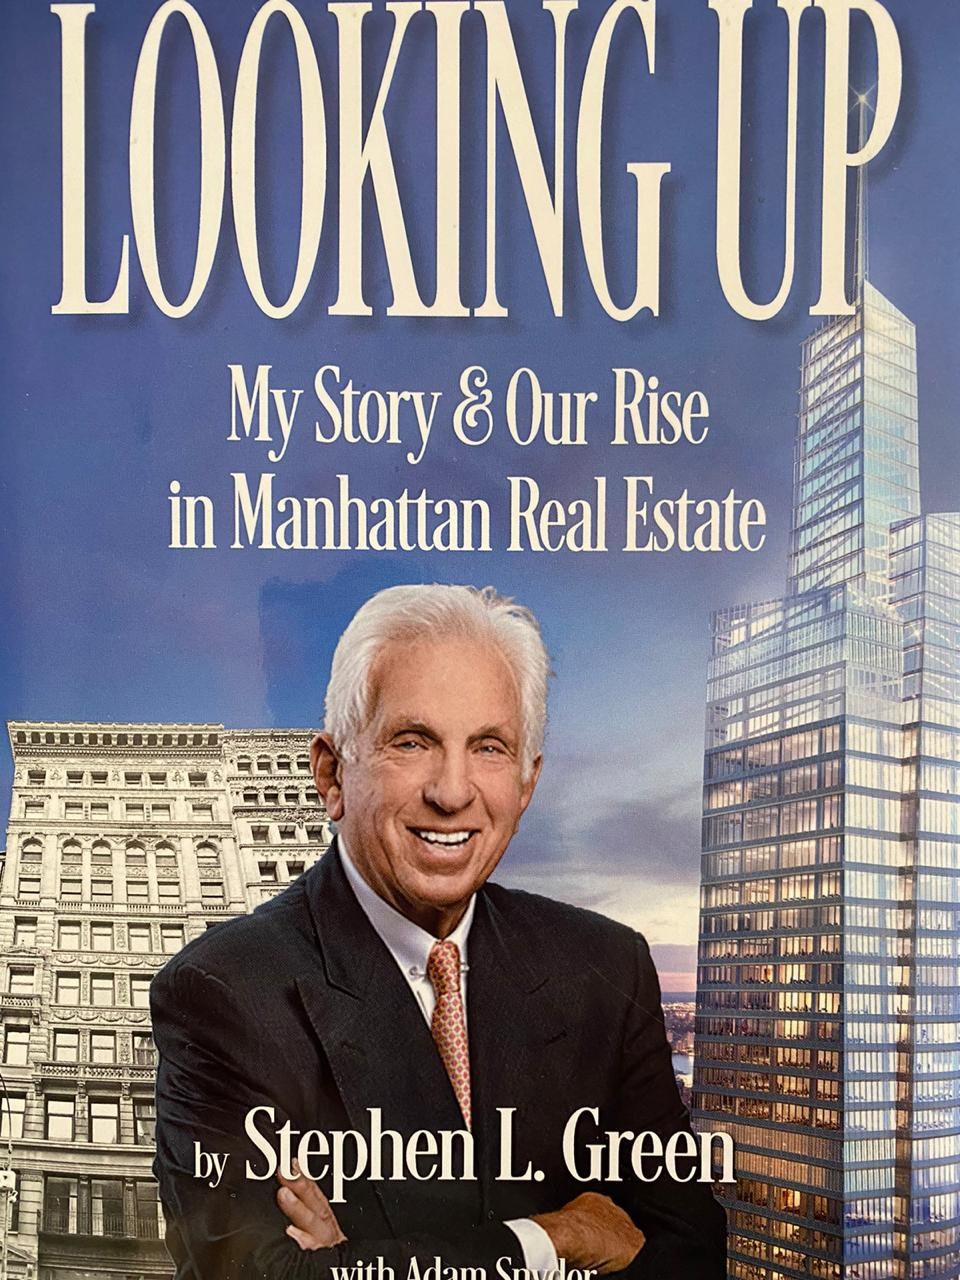 Looking up - My Story & Our Rise in Manhattan Real Estate Stephen L. Green, Adam Snyder